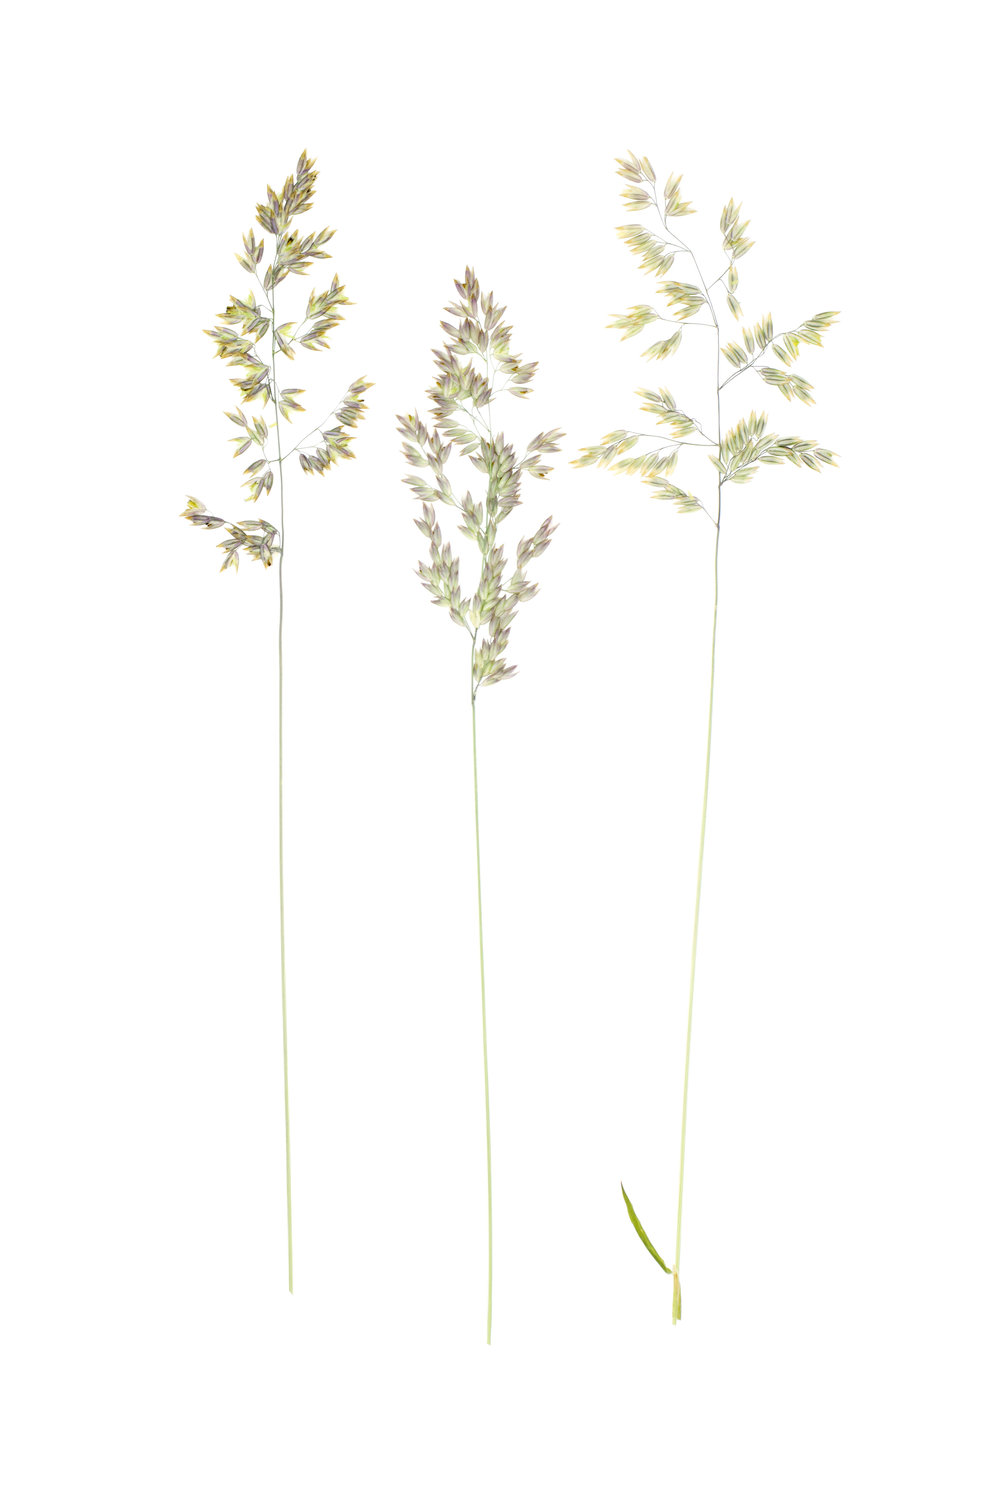 Holcus lanatus / Velvet Grass or Yorkshire Fog